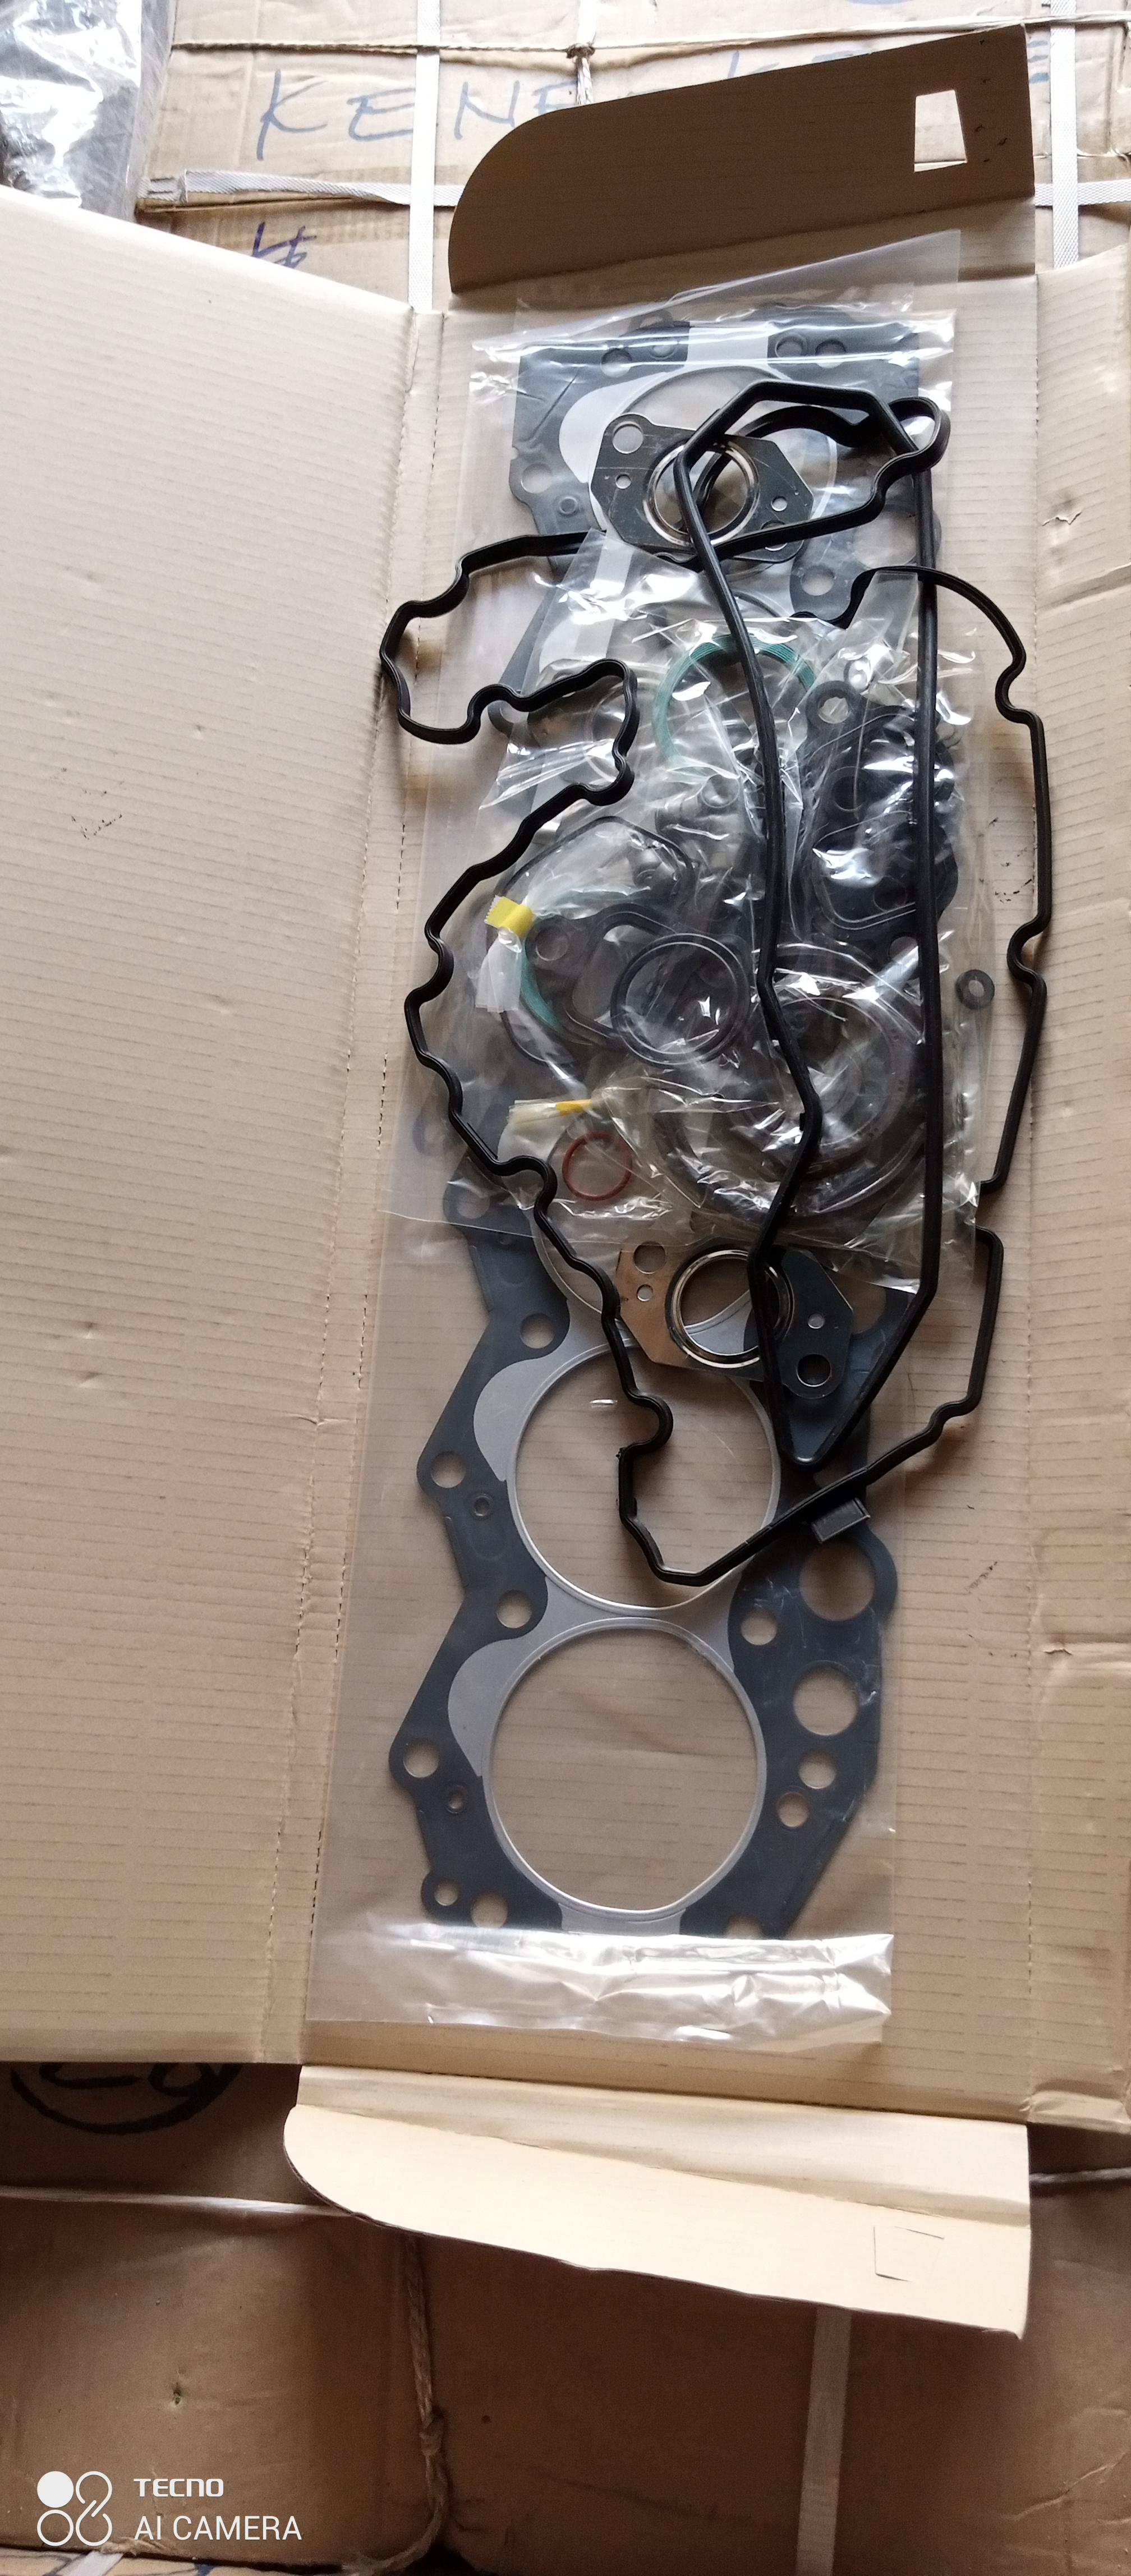 ORIGINAL GENUINE COMPLETE GASKET 1HZ